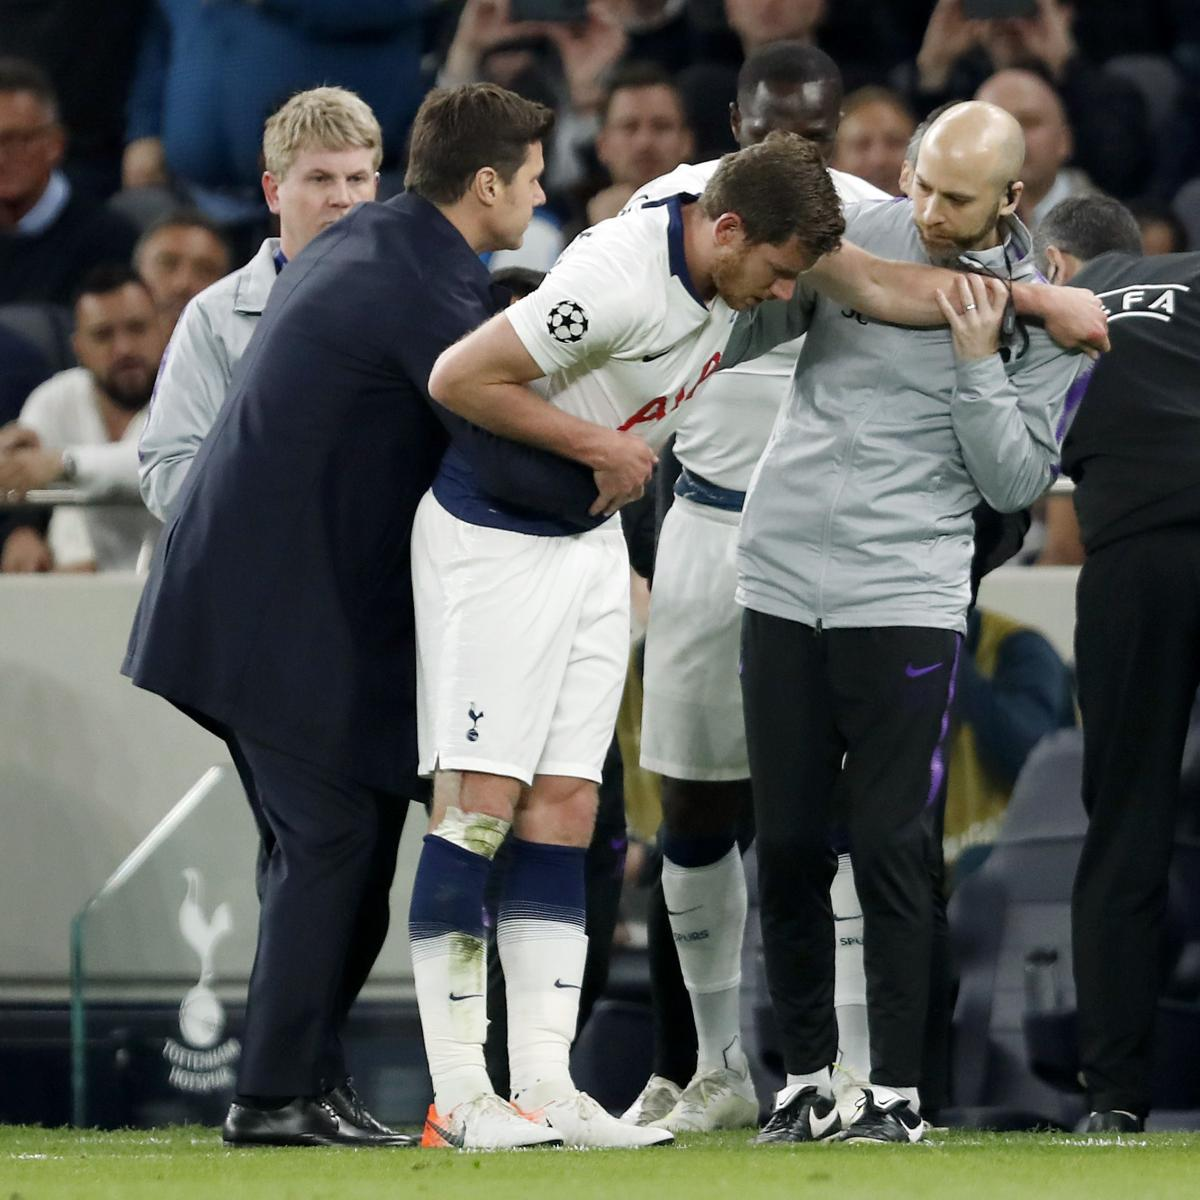 Tottenham's Jan Vertonghen Suffered Nose Injury, Not